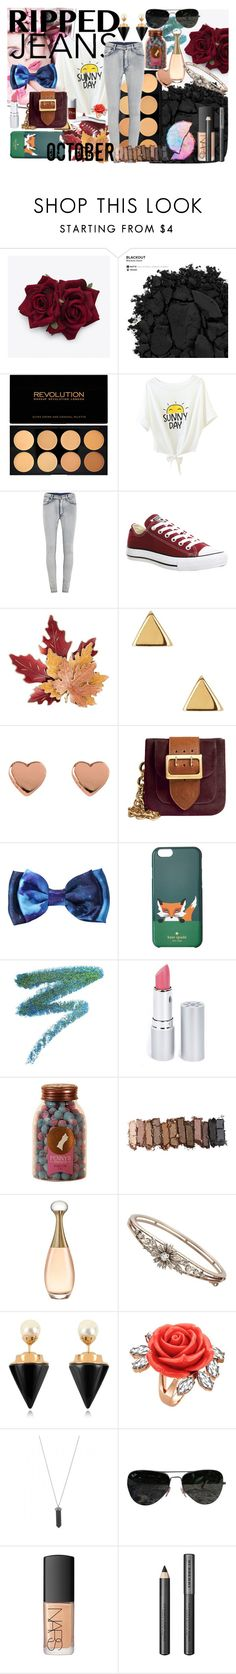 """""""A Little Tear, Here and There"""" by nerdychic101 on Polyvore featuring Urban Decay, Cheap Monday, Converse, Croft & Barrow, Argento Vivo, Ted Baker, Burberry, Kate Spade, Manic Panic and HoneyBee Gardens"""